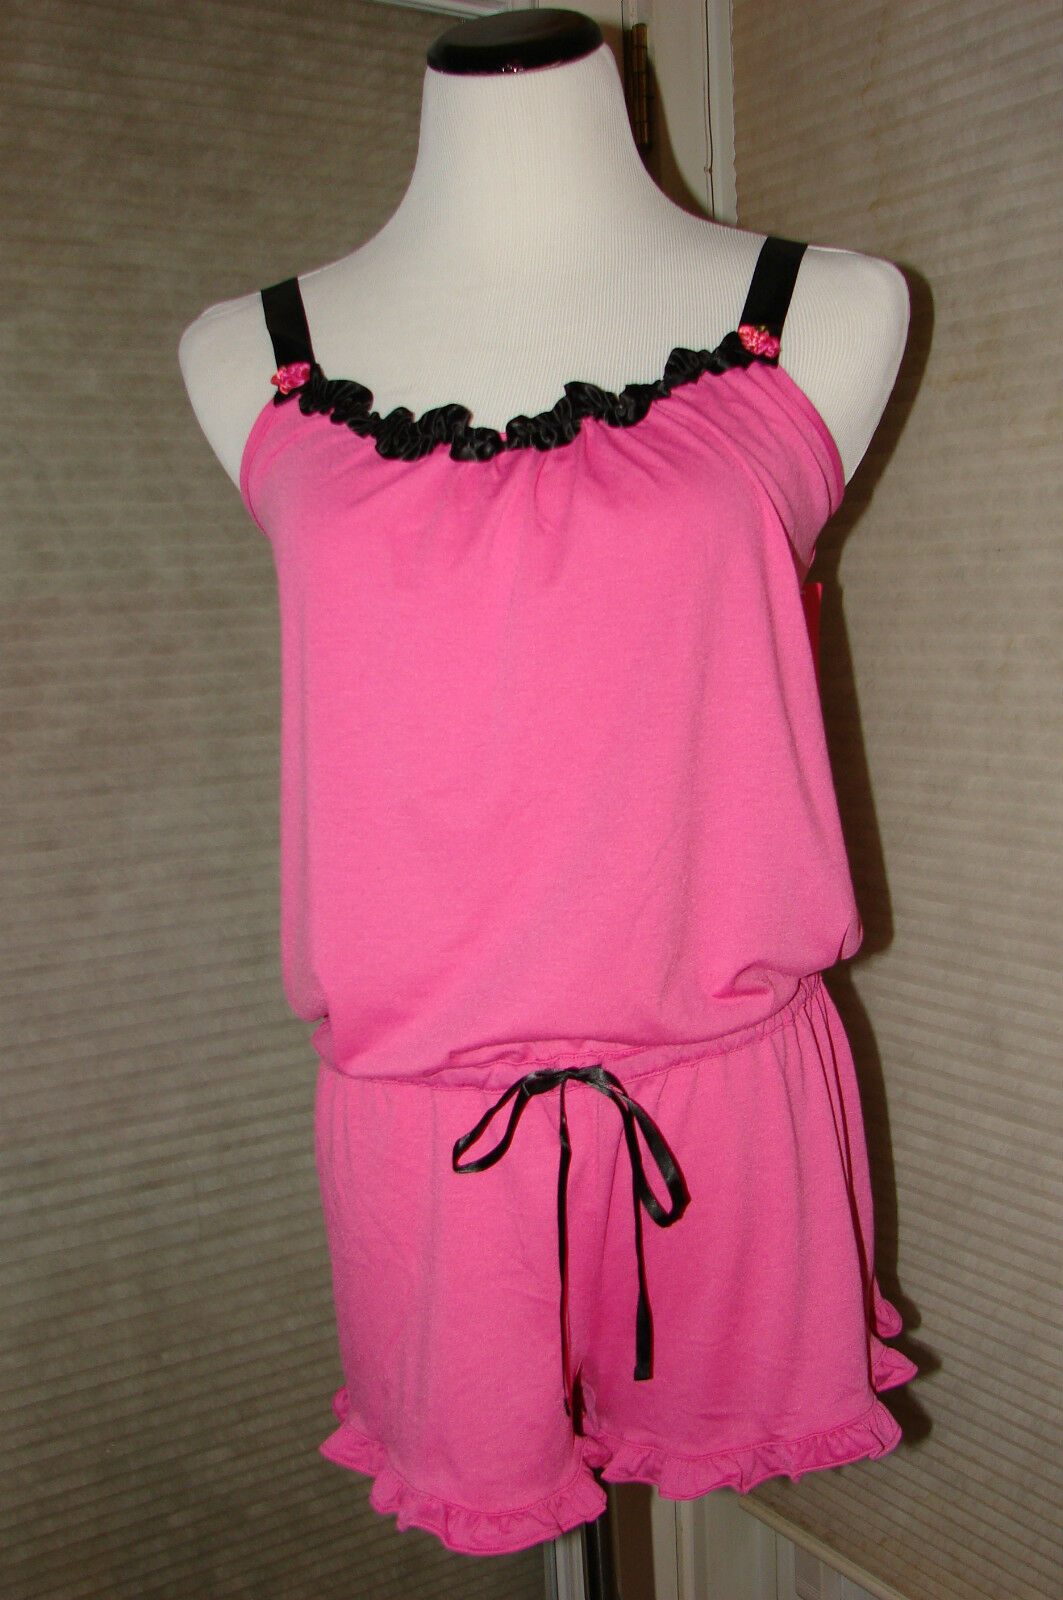 BETSEY JOHNSON PINK ROMPER  LOUNGE WEAR SIZE LG NWT ADORABLE     HARD TO FIND